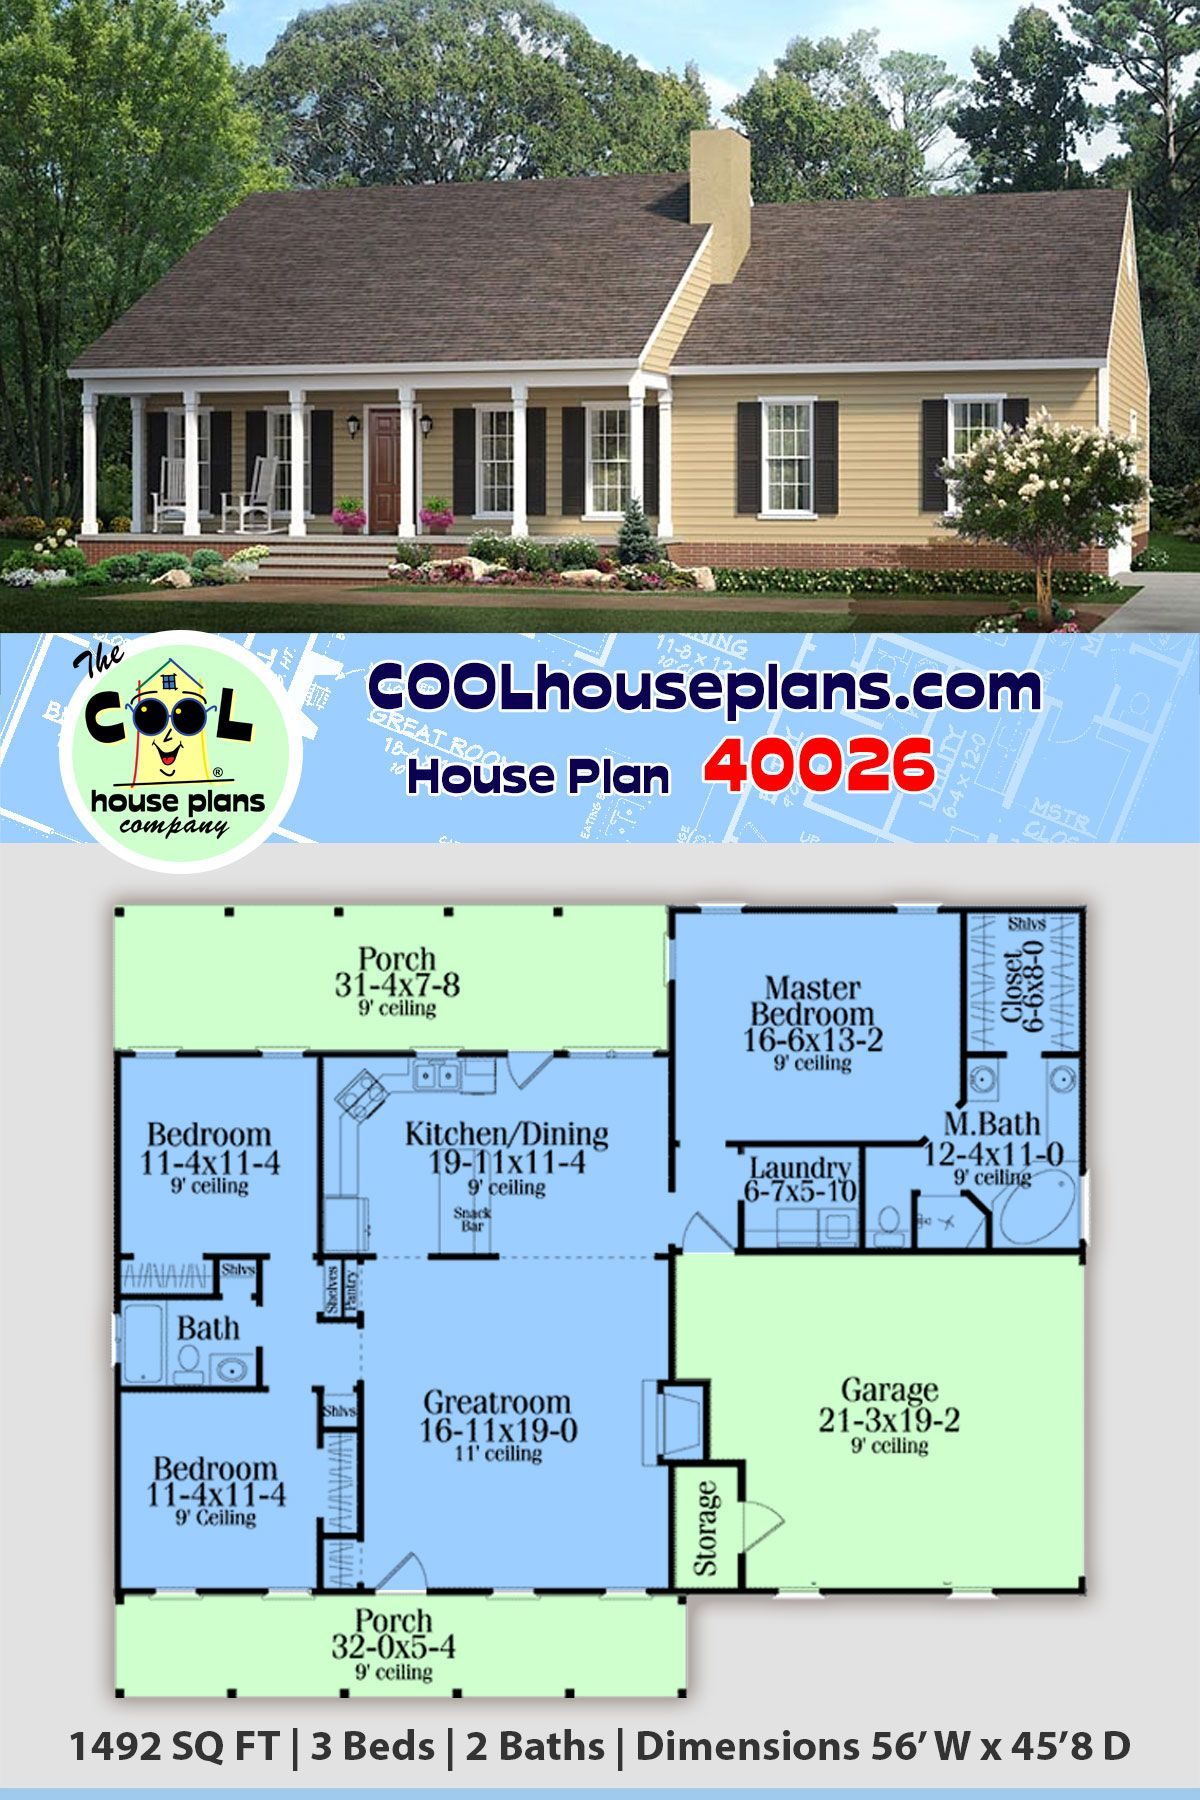 Ranch Style House Plan 40026 With 3 Bed 2 Bath 2 Car Garage Affordable House Plans Simple Ranch House Plans Simple House Plans